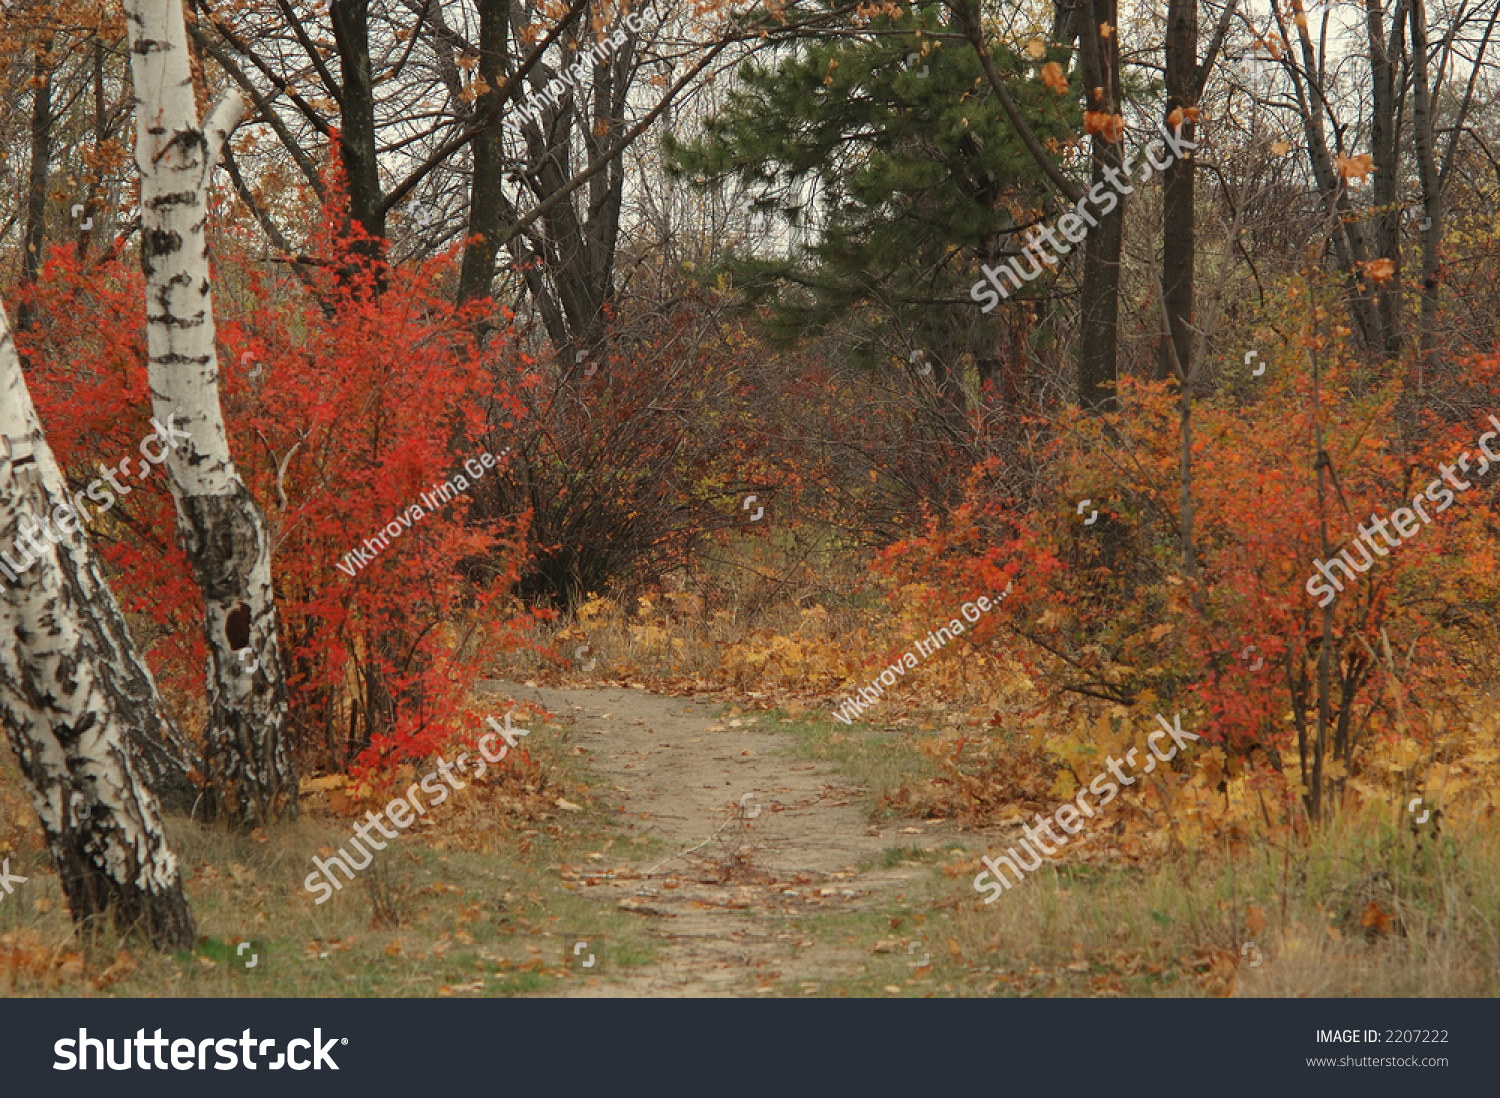 Autumn Landscape With Road Between The Trees Stock Photo